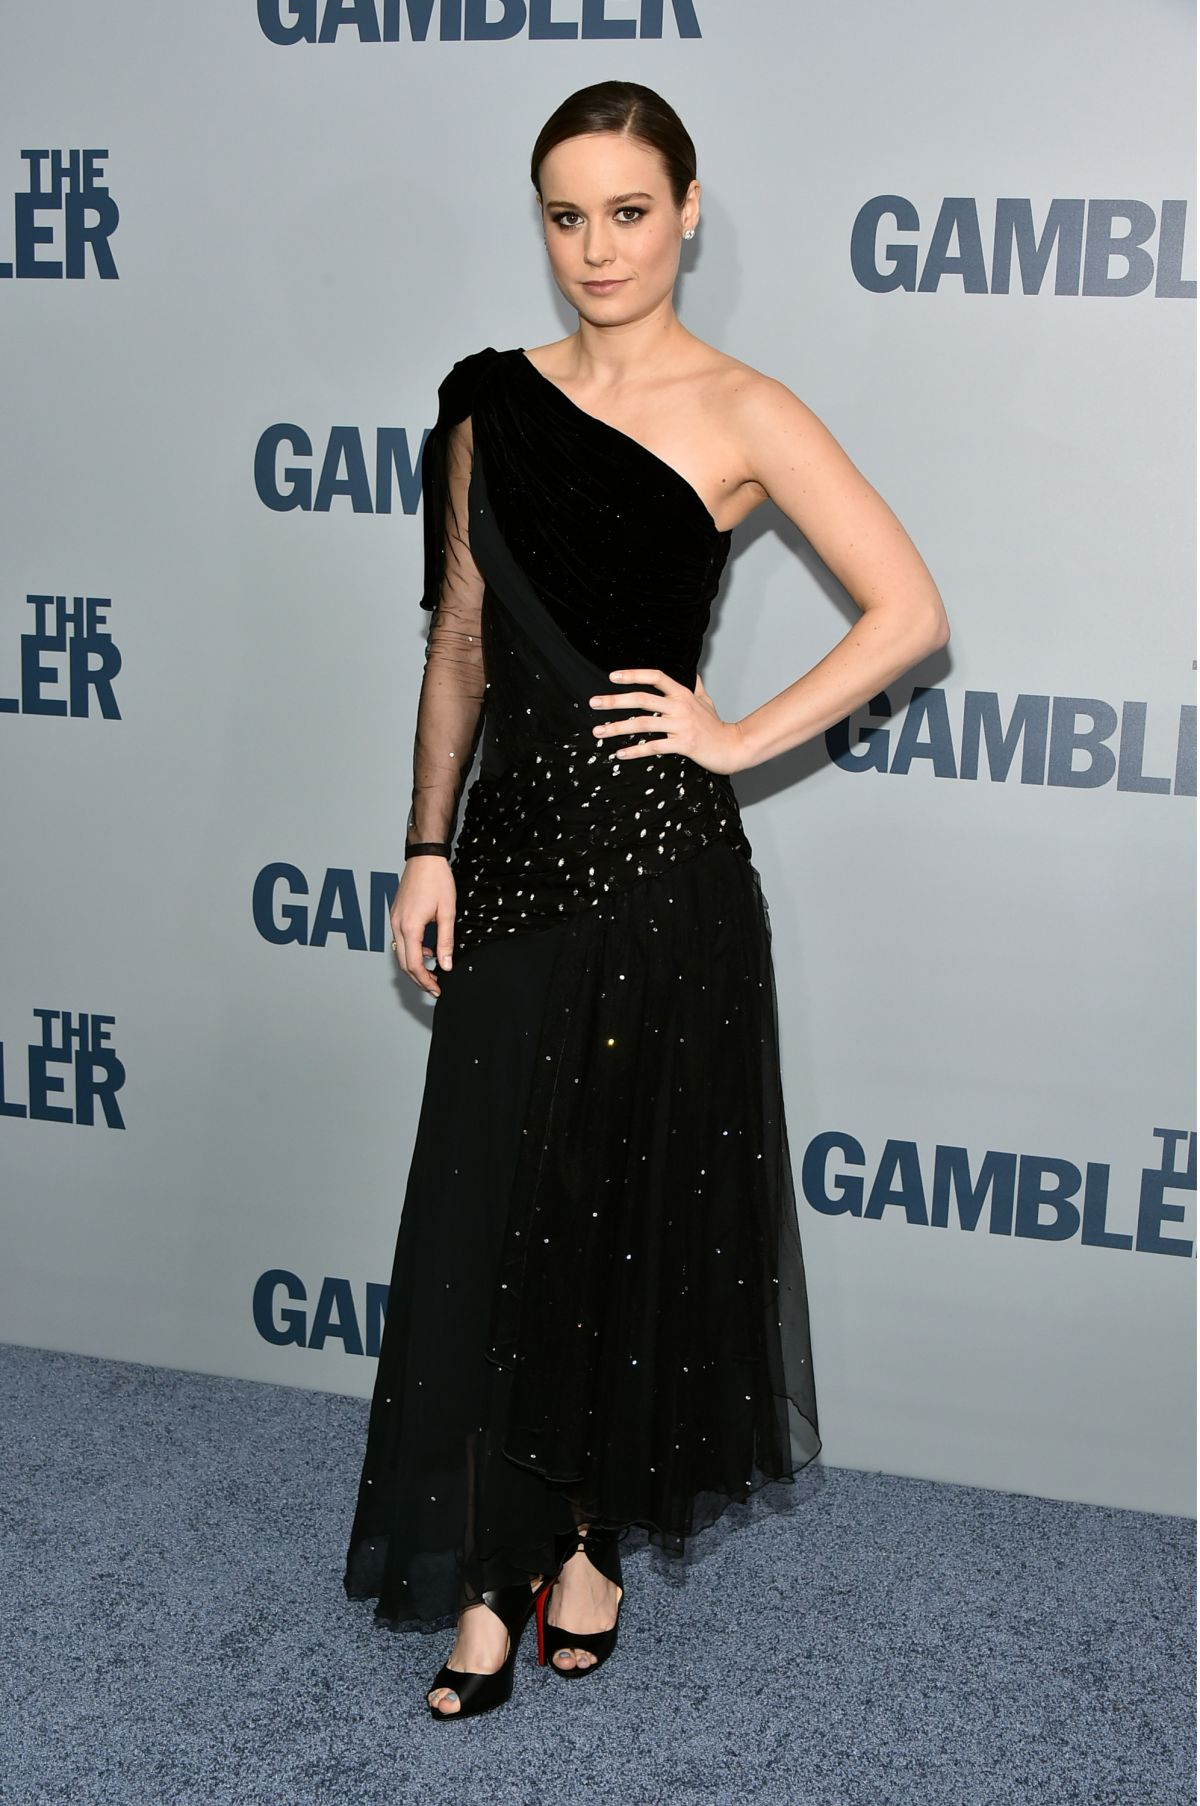 brie-larson-at-the-gambler-premiere-in-new-york_2